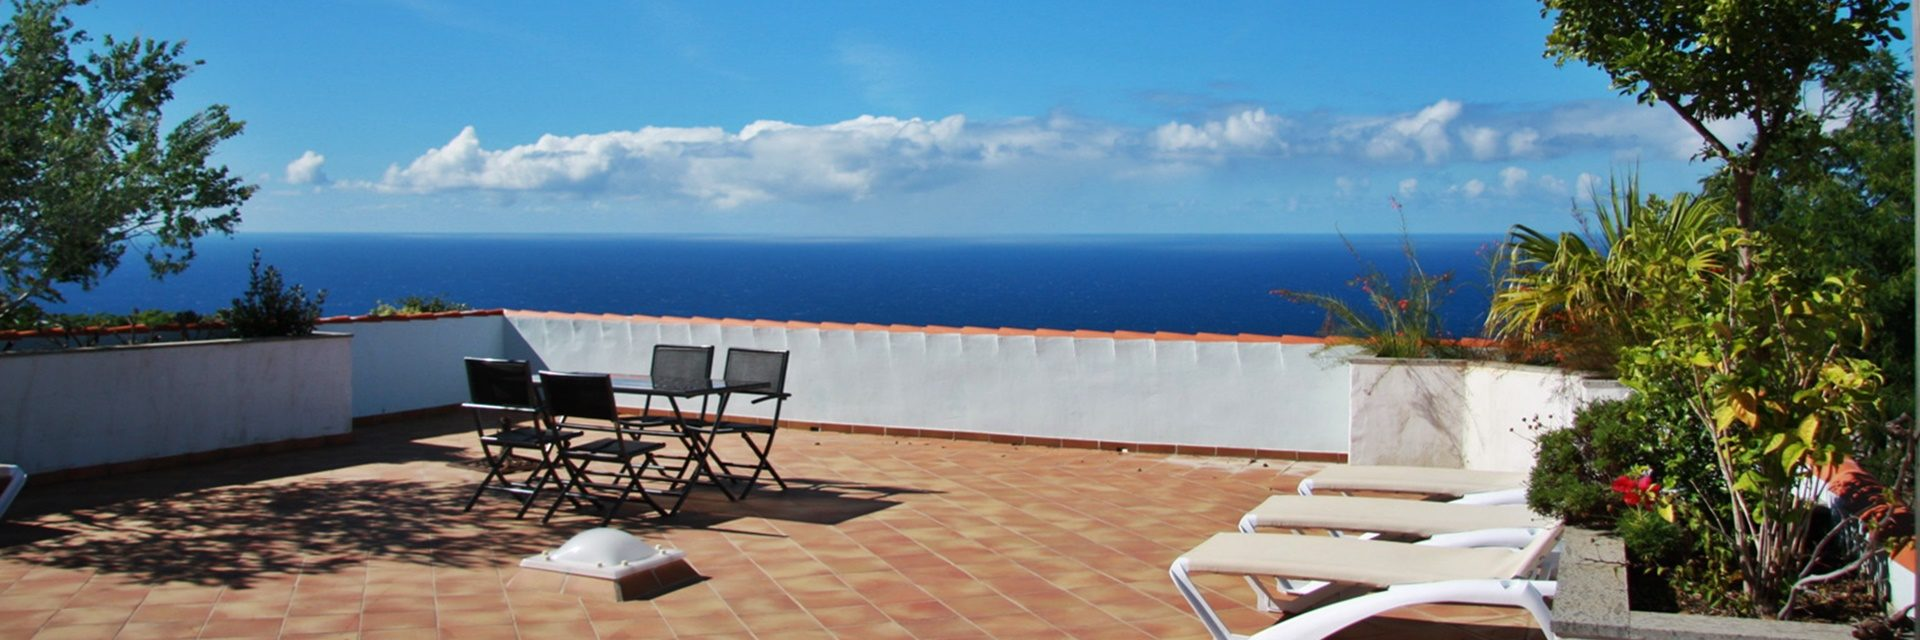 Holiday home Casa Soraya - Tazacorte - La Palma